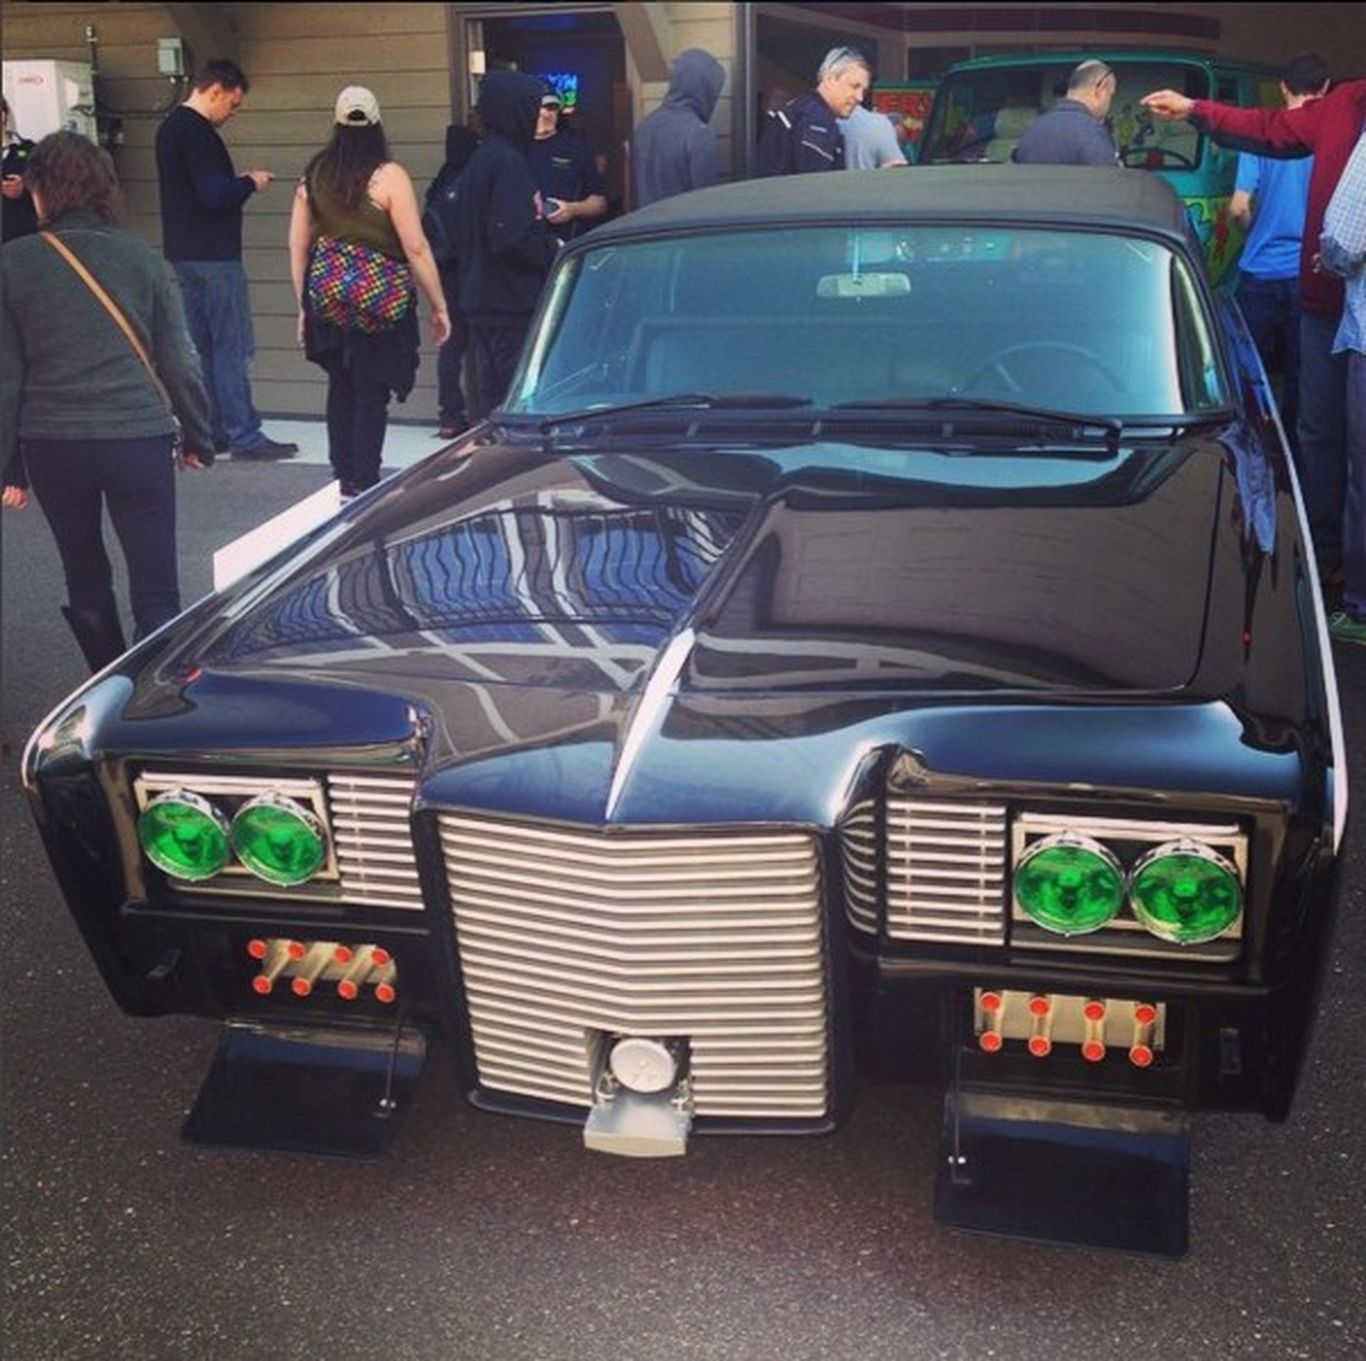 Chrysler Imperial Crown styled after the car Black Beauty from The Green Hornet TV show